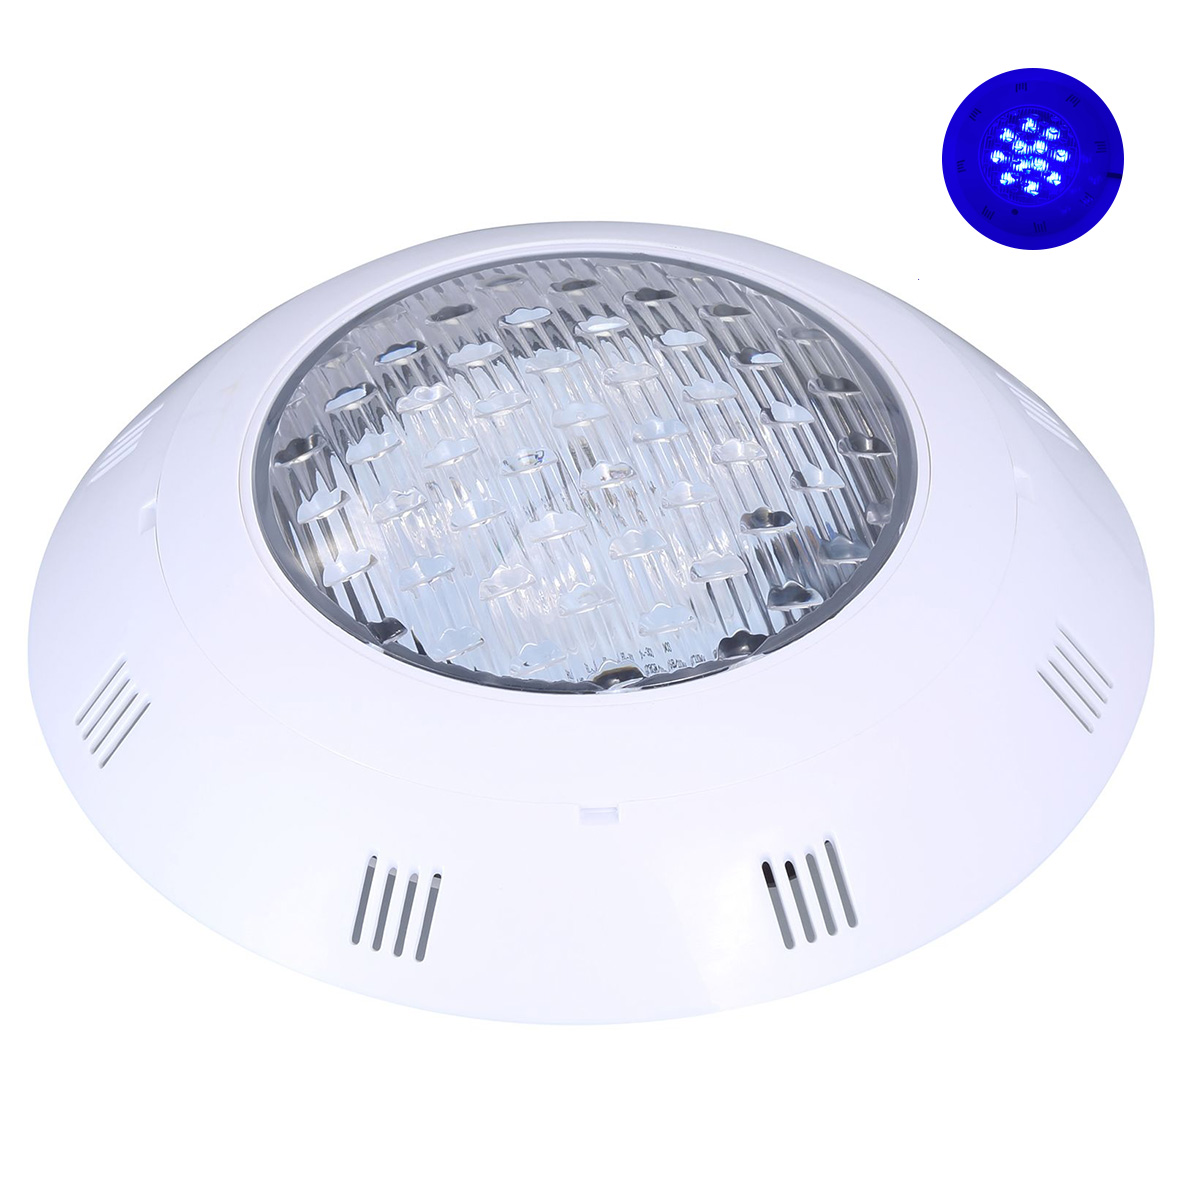 LED spotlight 12V 12w for indoor Fountains, Waterproof FE75-12W color BLUE